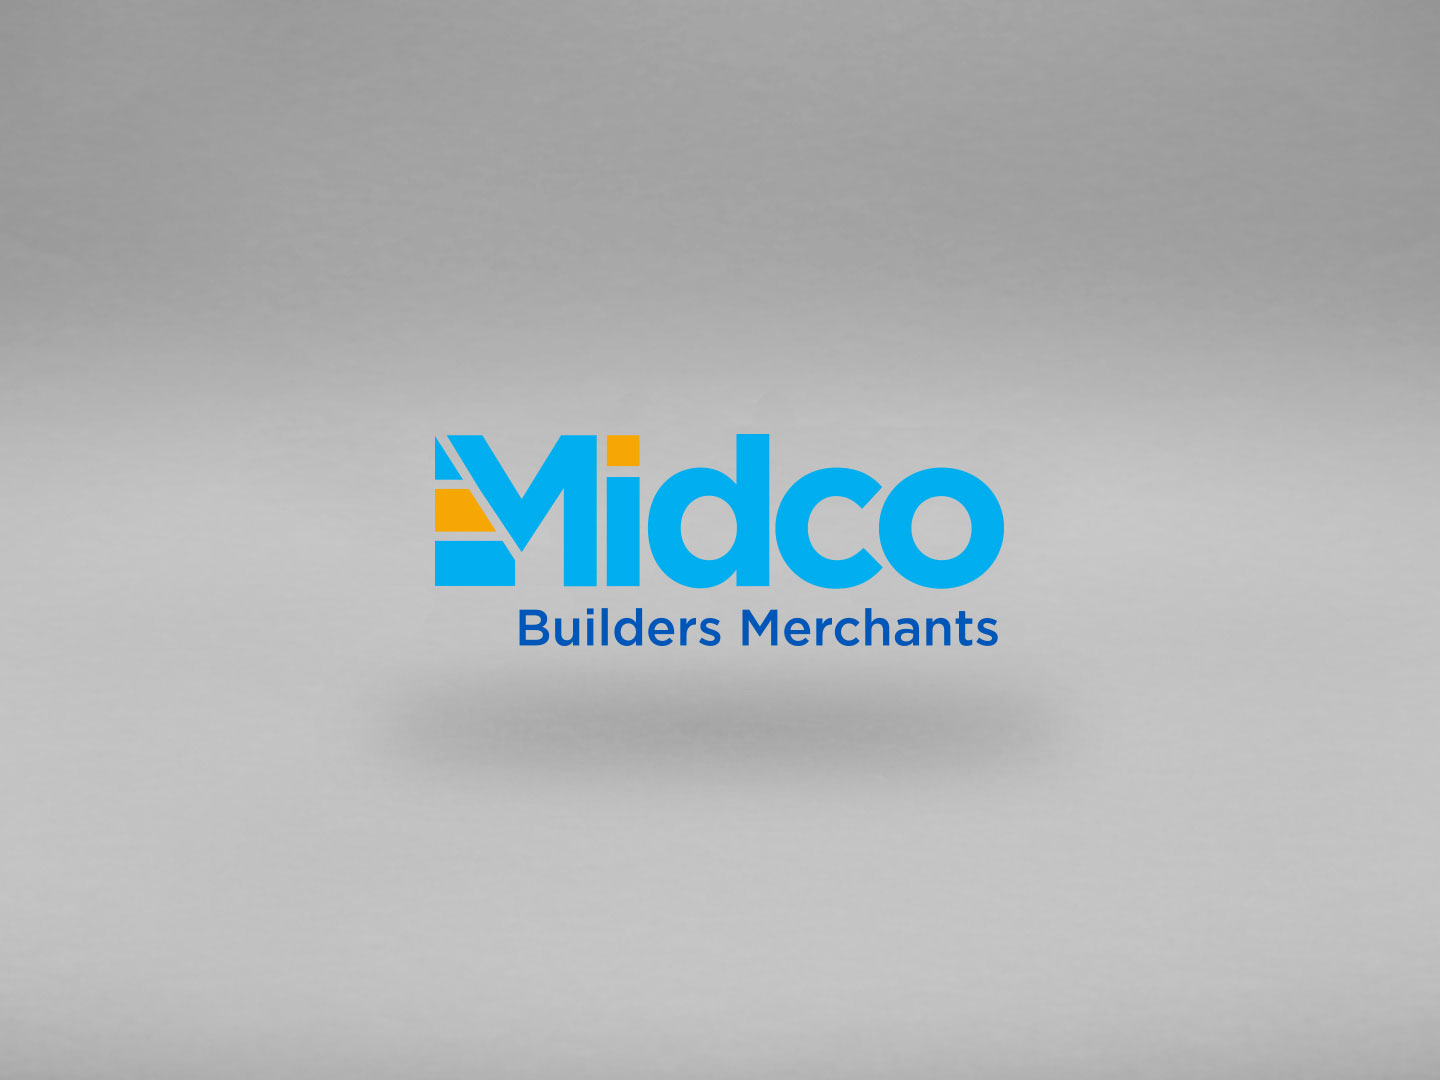 midco builders merchants, grafika, bakewell, derbyshire, branding, logo, stationery, graphic design, agency, peak district, sheffield, chesterfield, manchester, derby